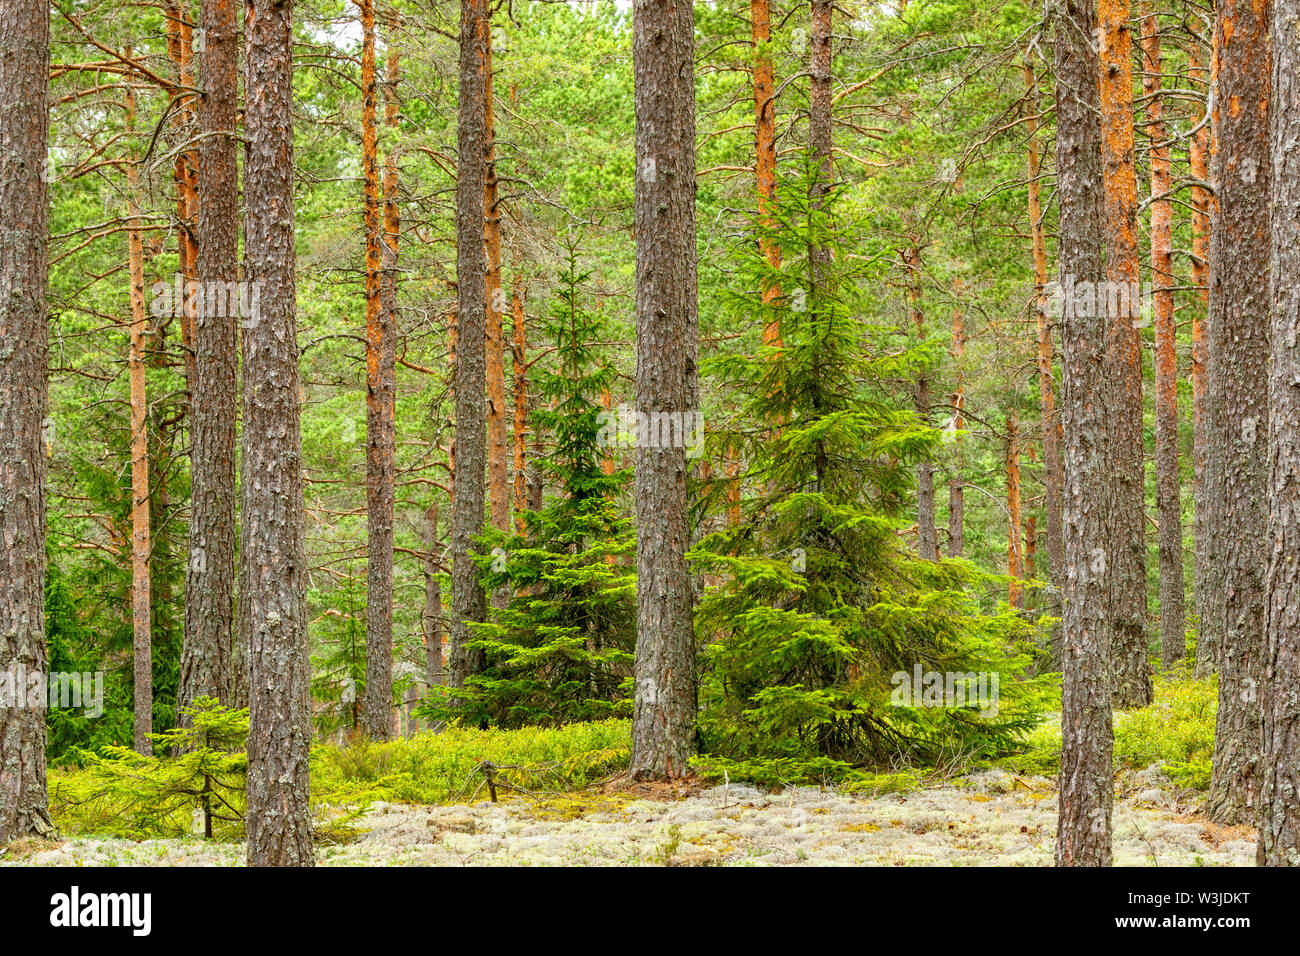 Forest with spruce trees and pine tree trunks Stock Photo